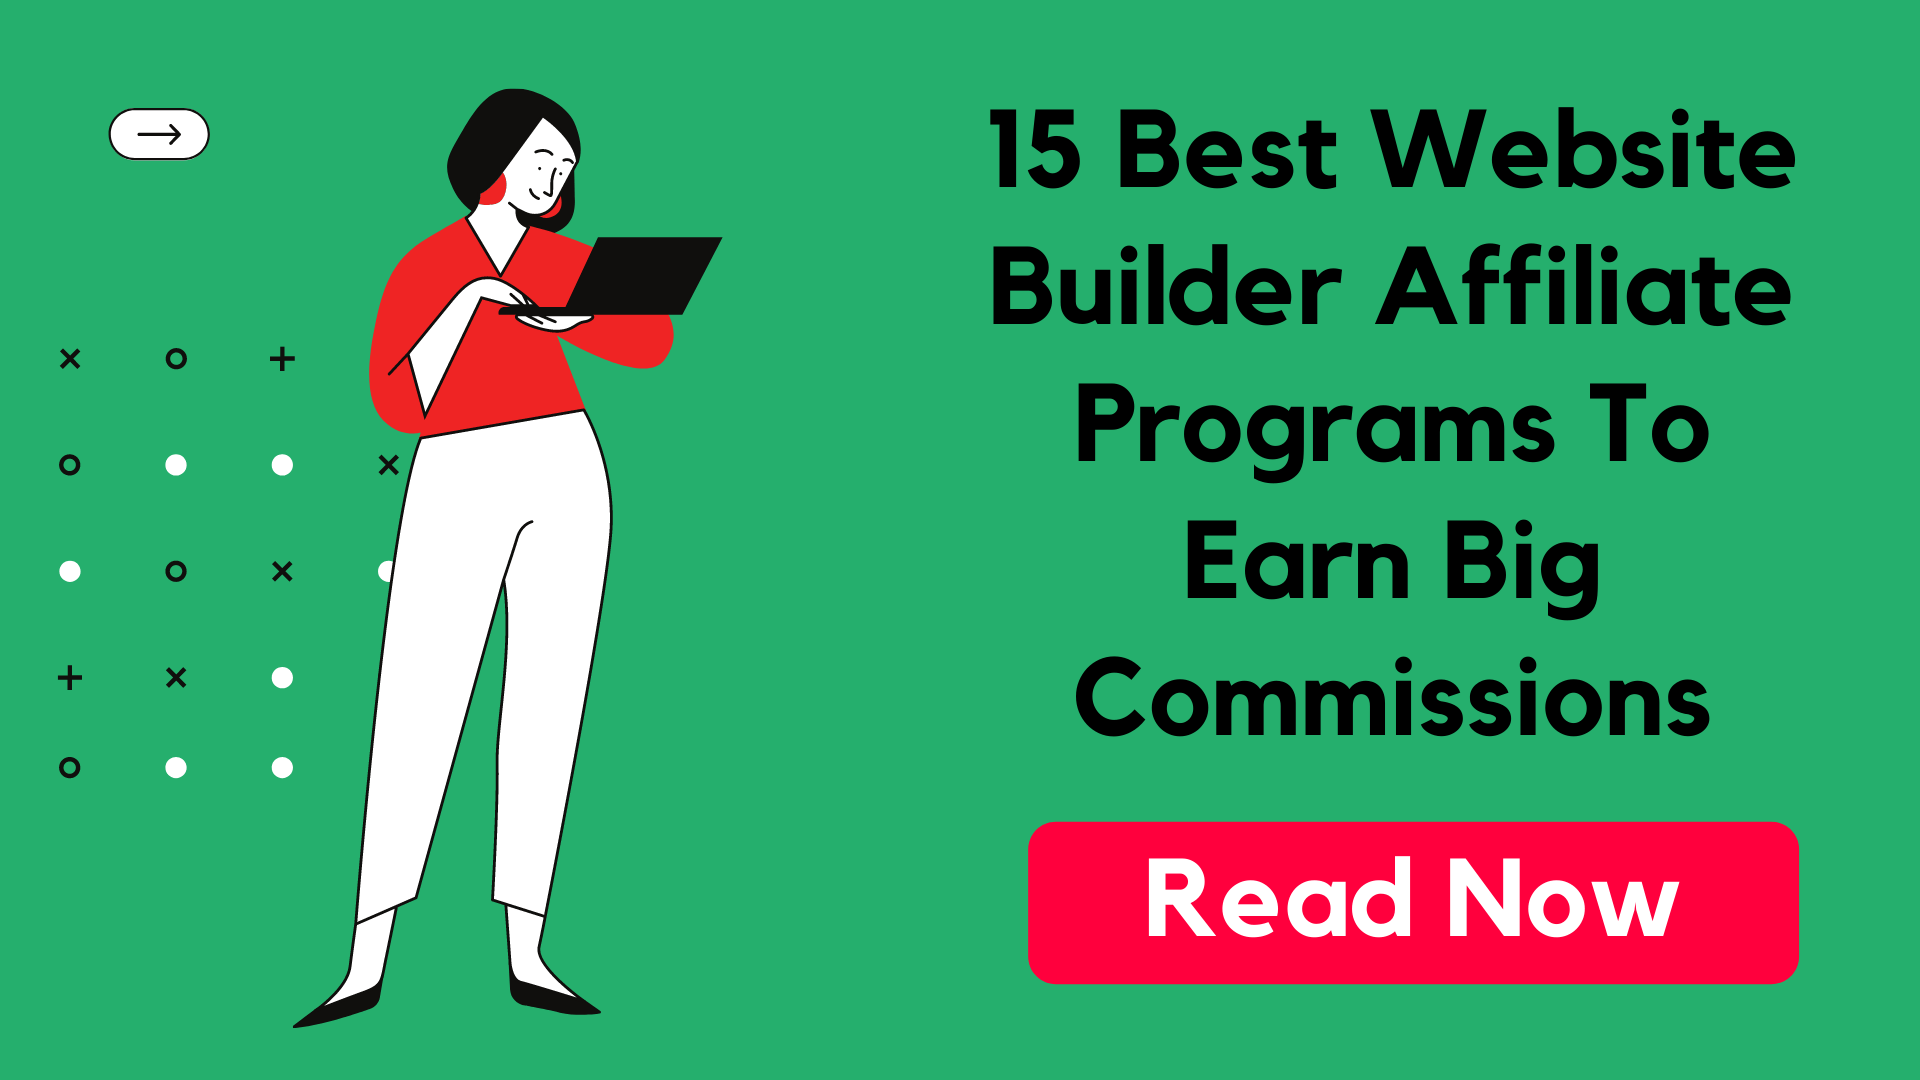 15 Website Builder Affiliate Programs With Crazy Commissions